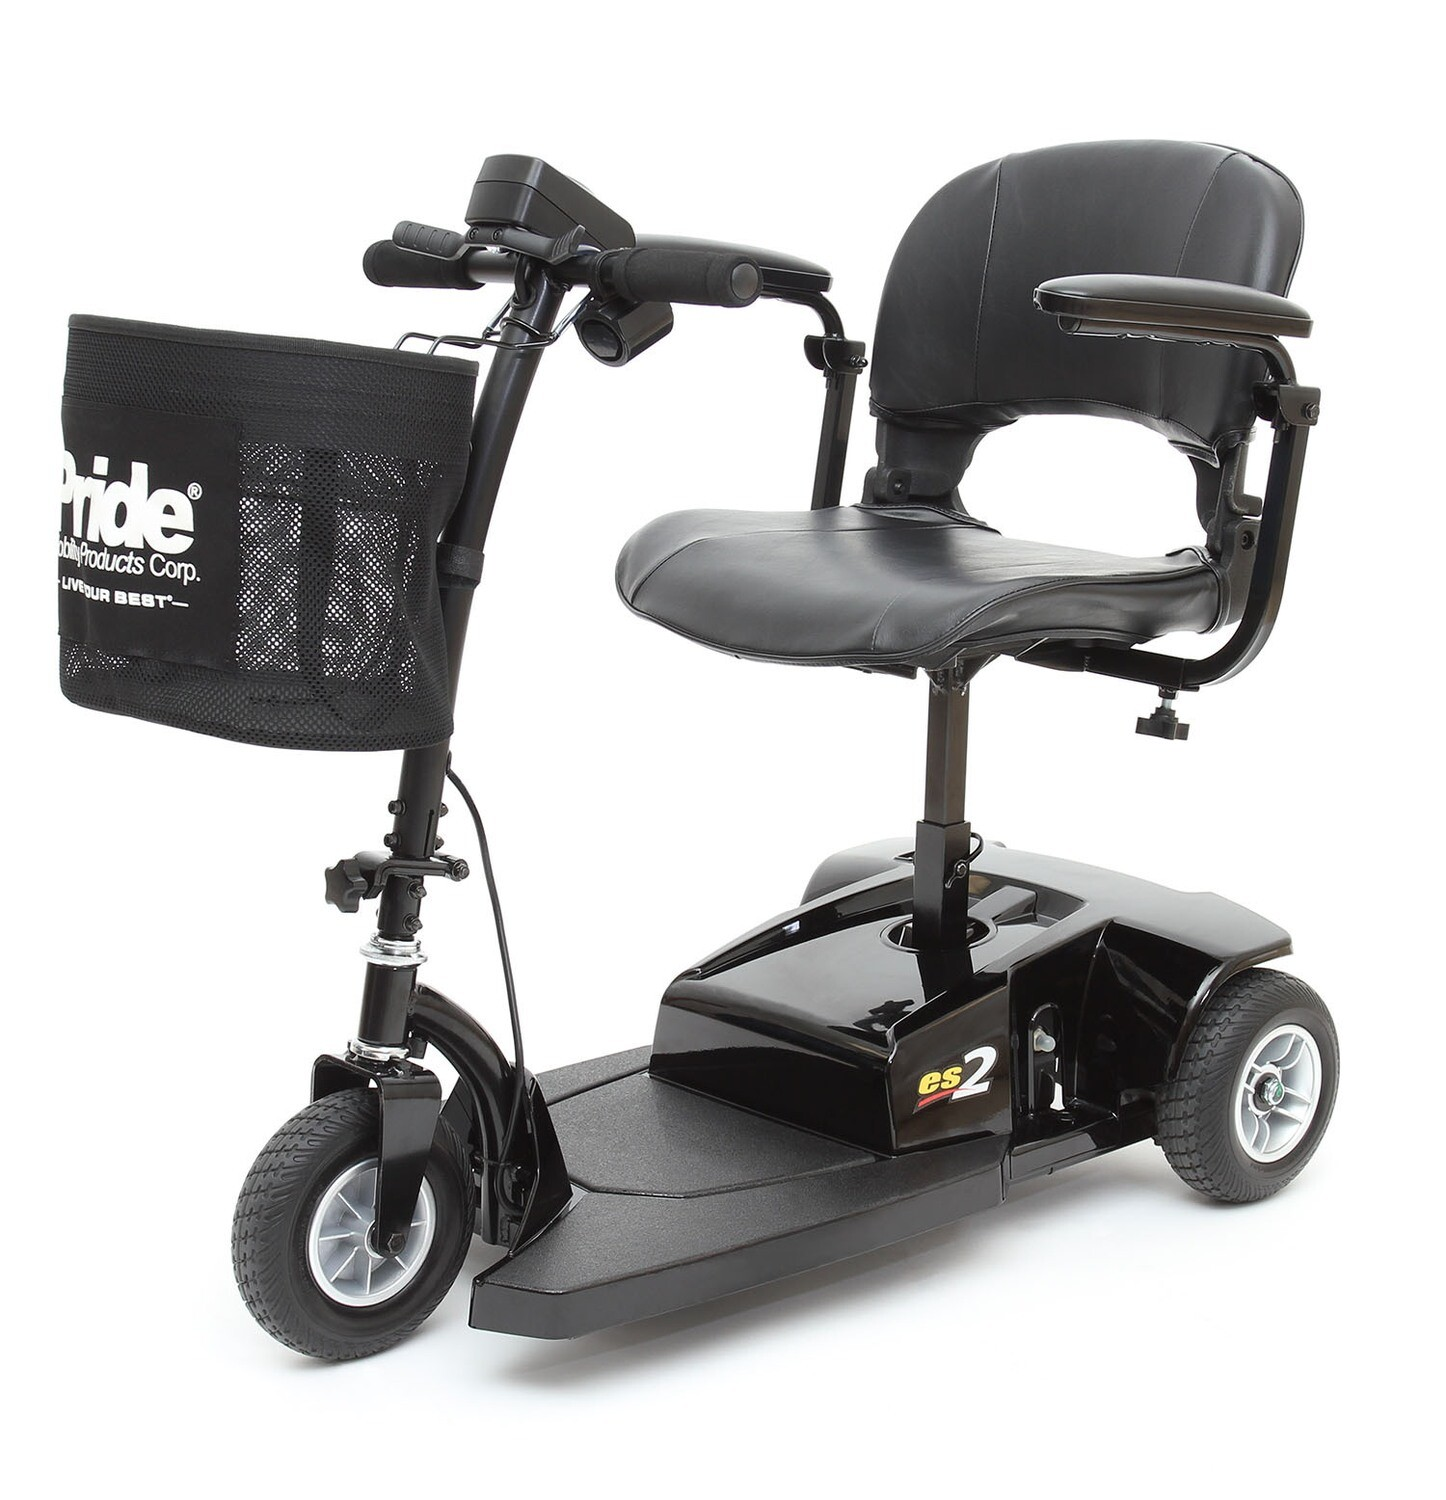 The Go Go Es 2 Pride Mobility Scooter